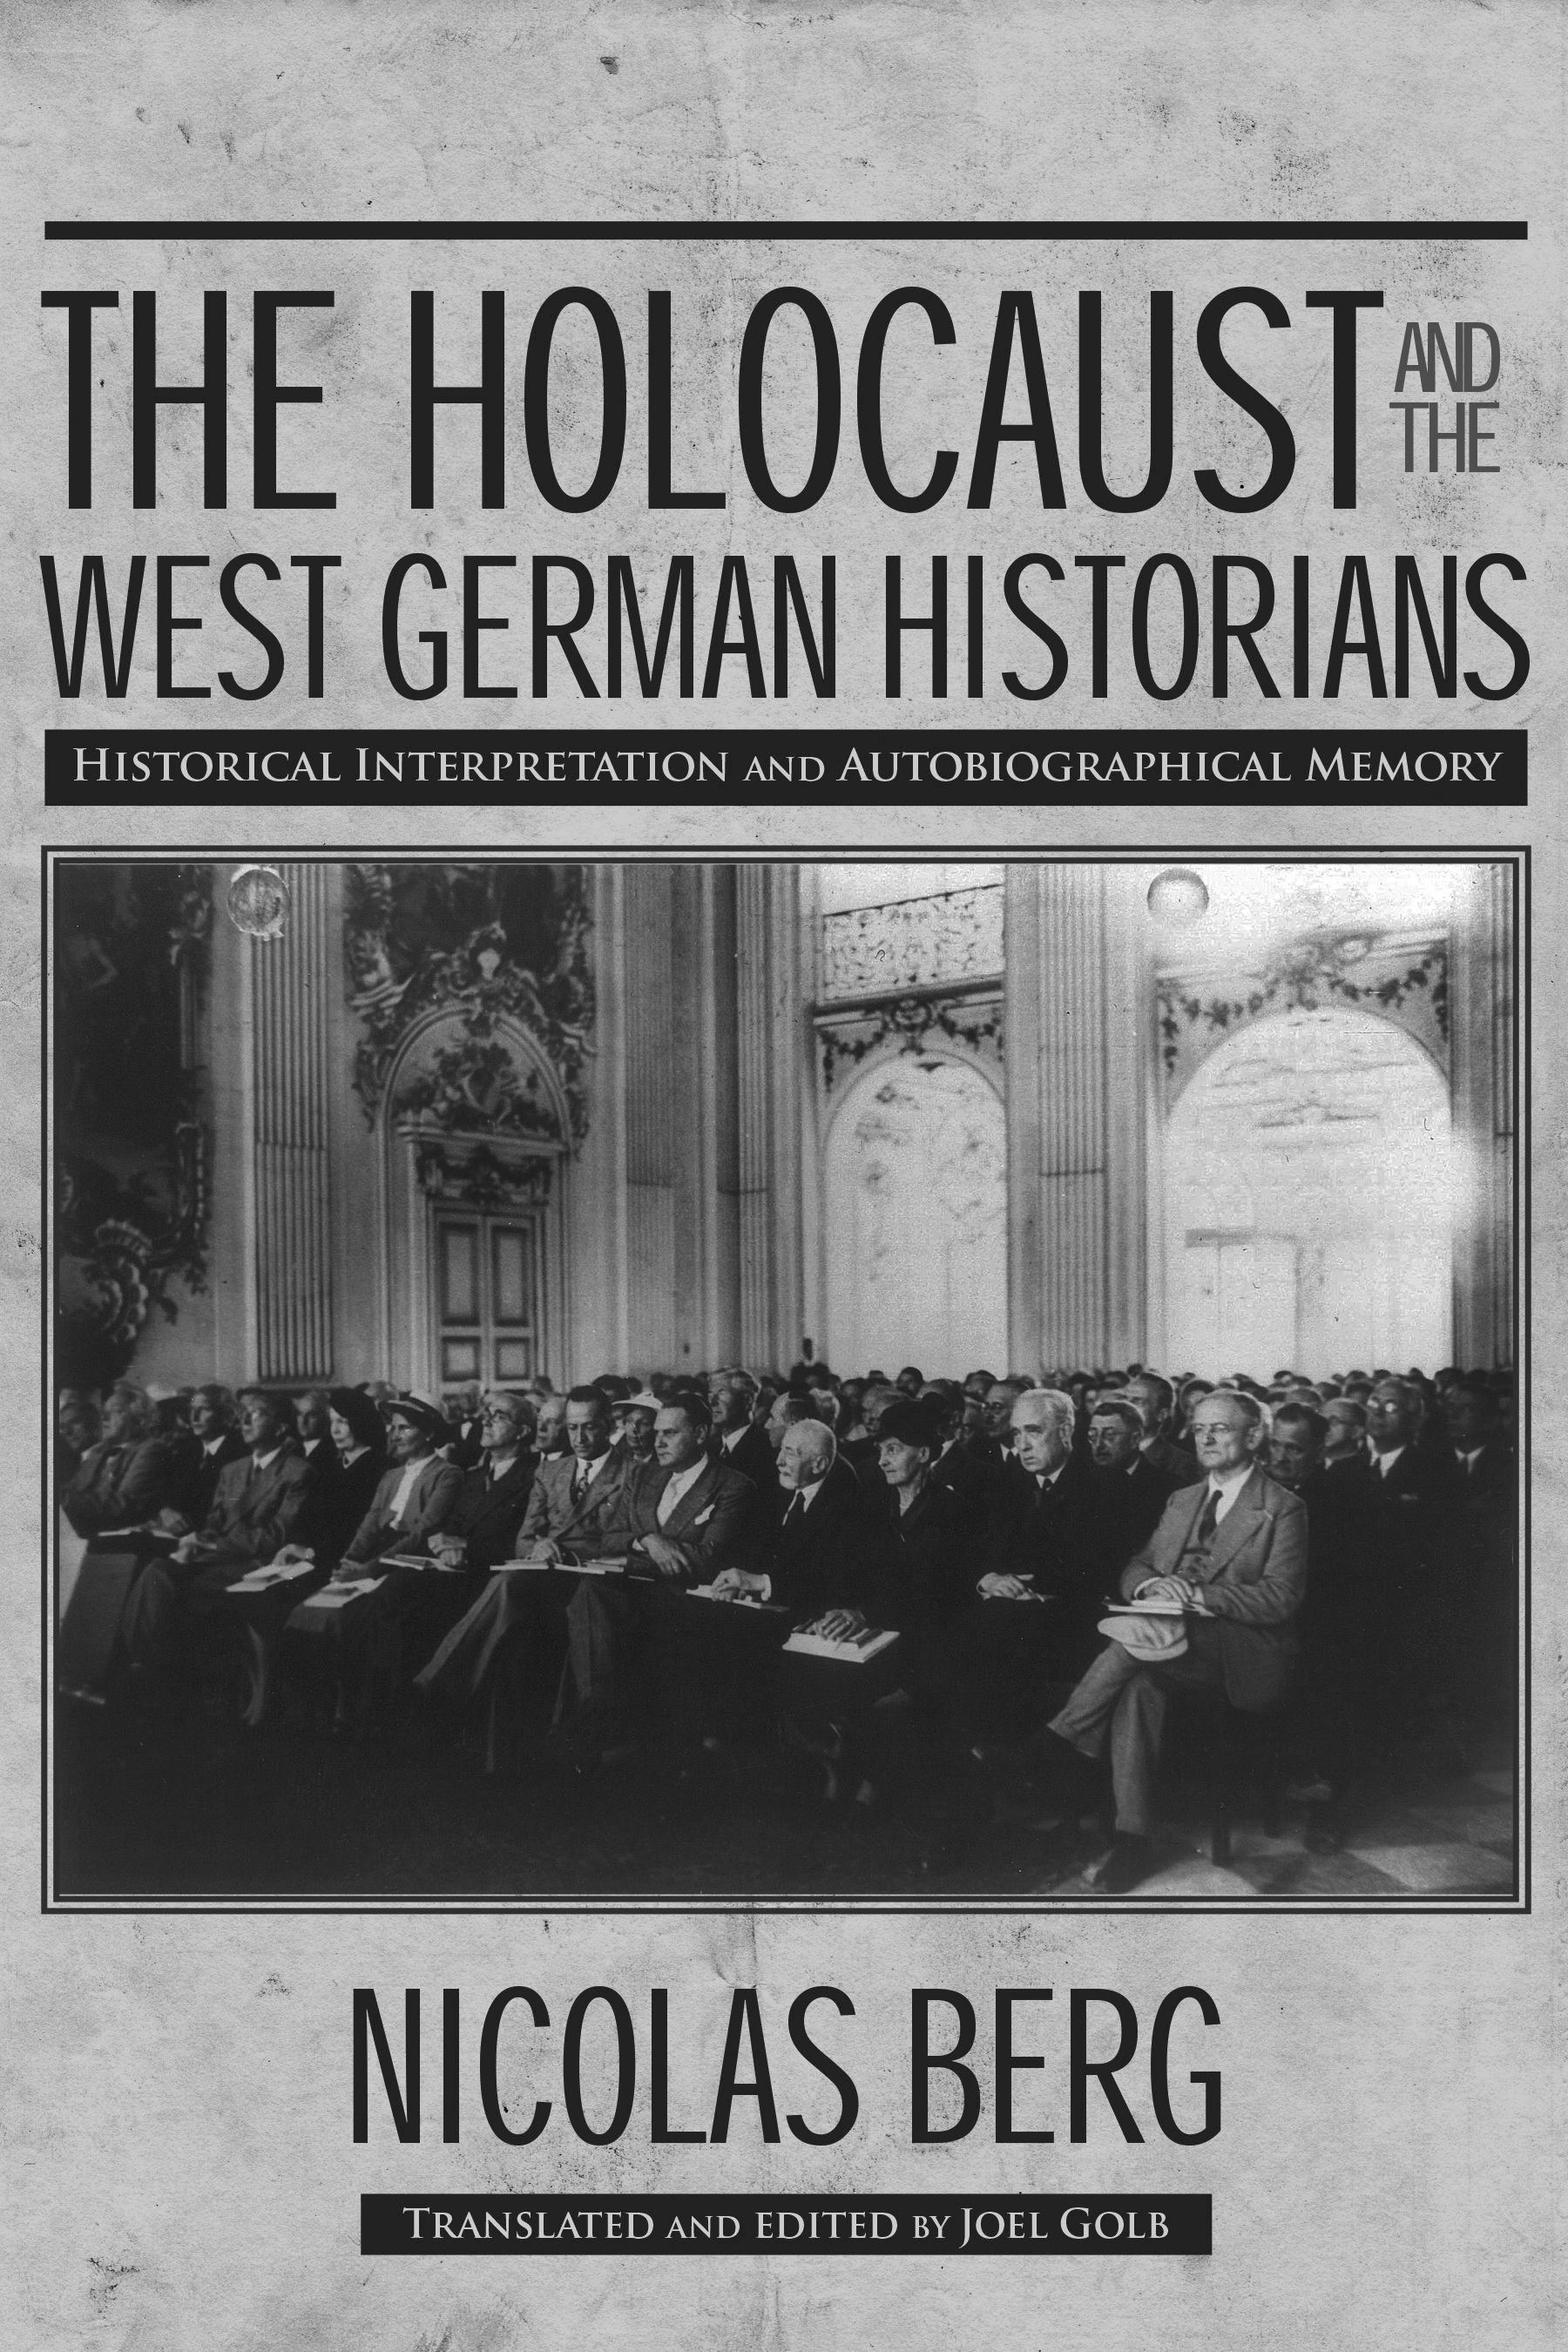 download the history of spiritualism vol i and ii